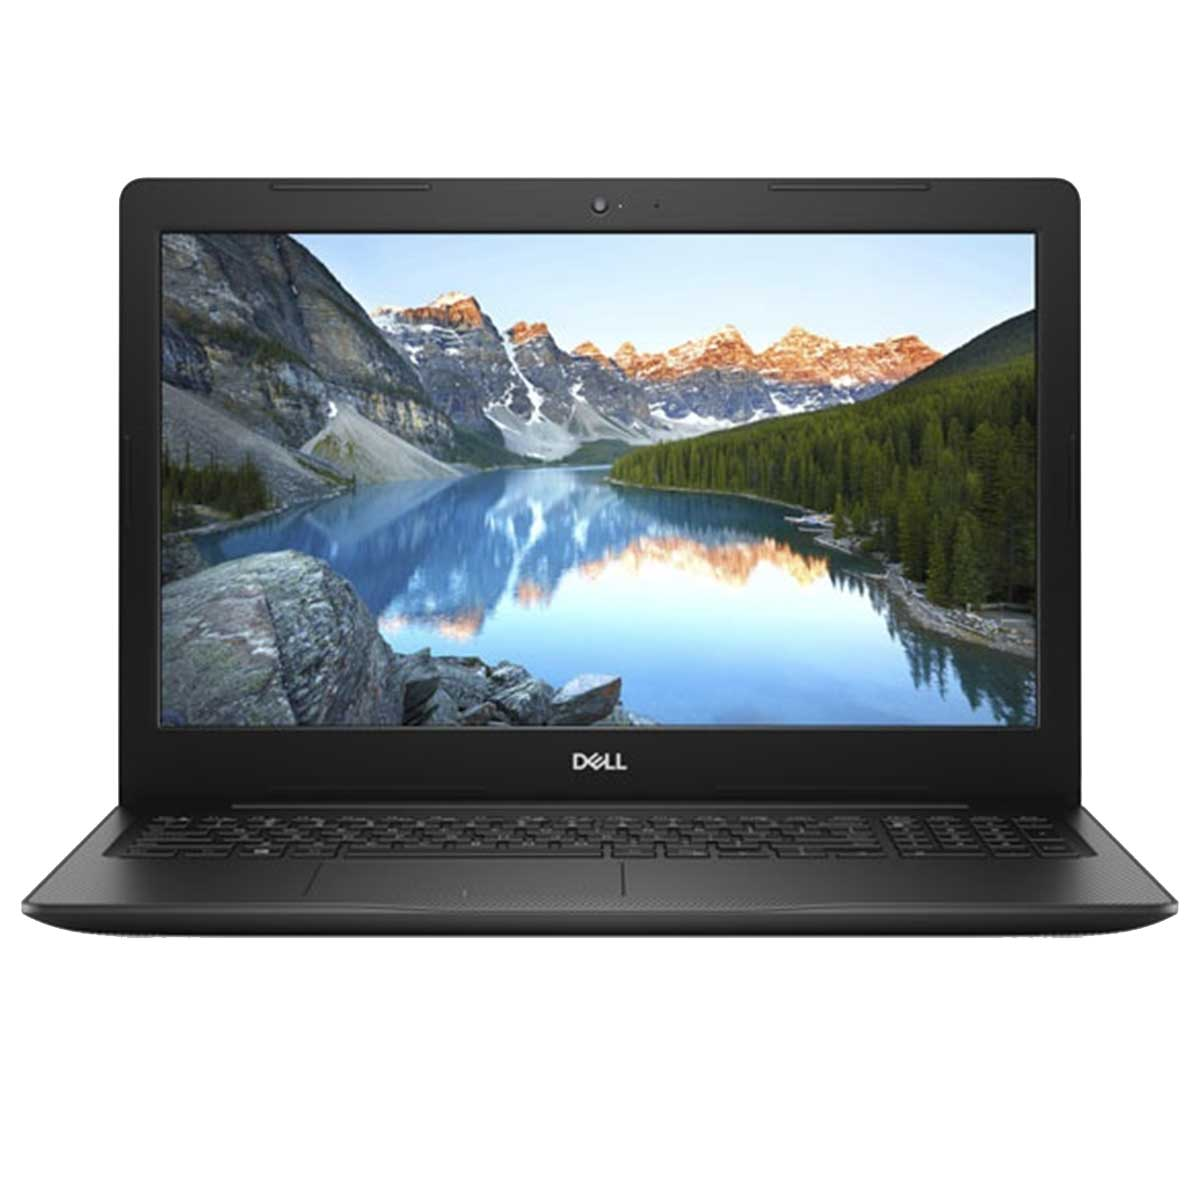 Laptop Inspiron 3593 (N3593A) P75F013 (Black)